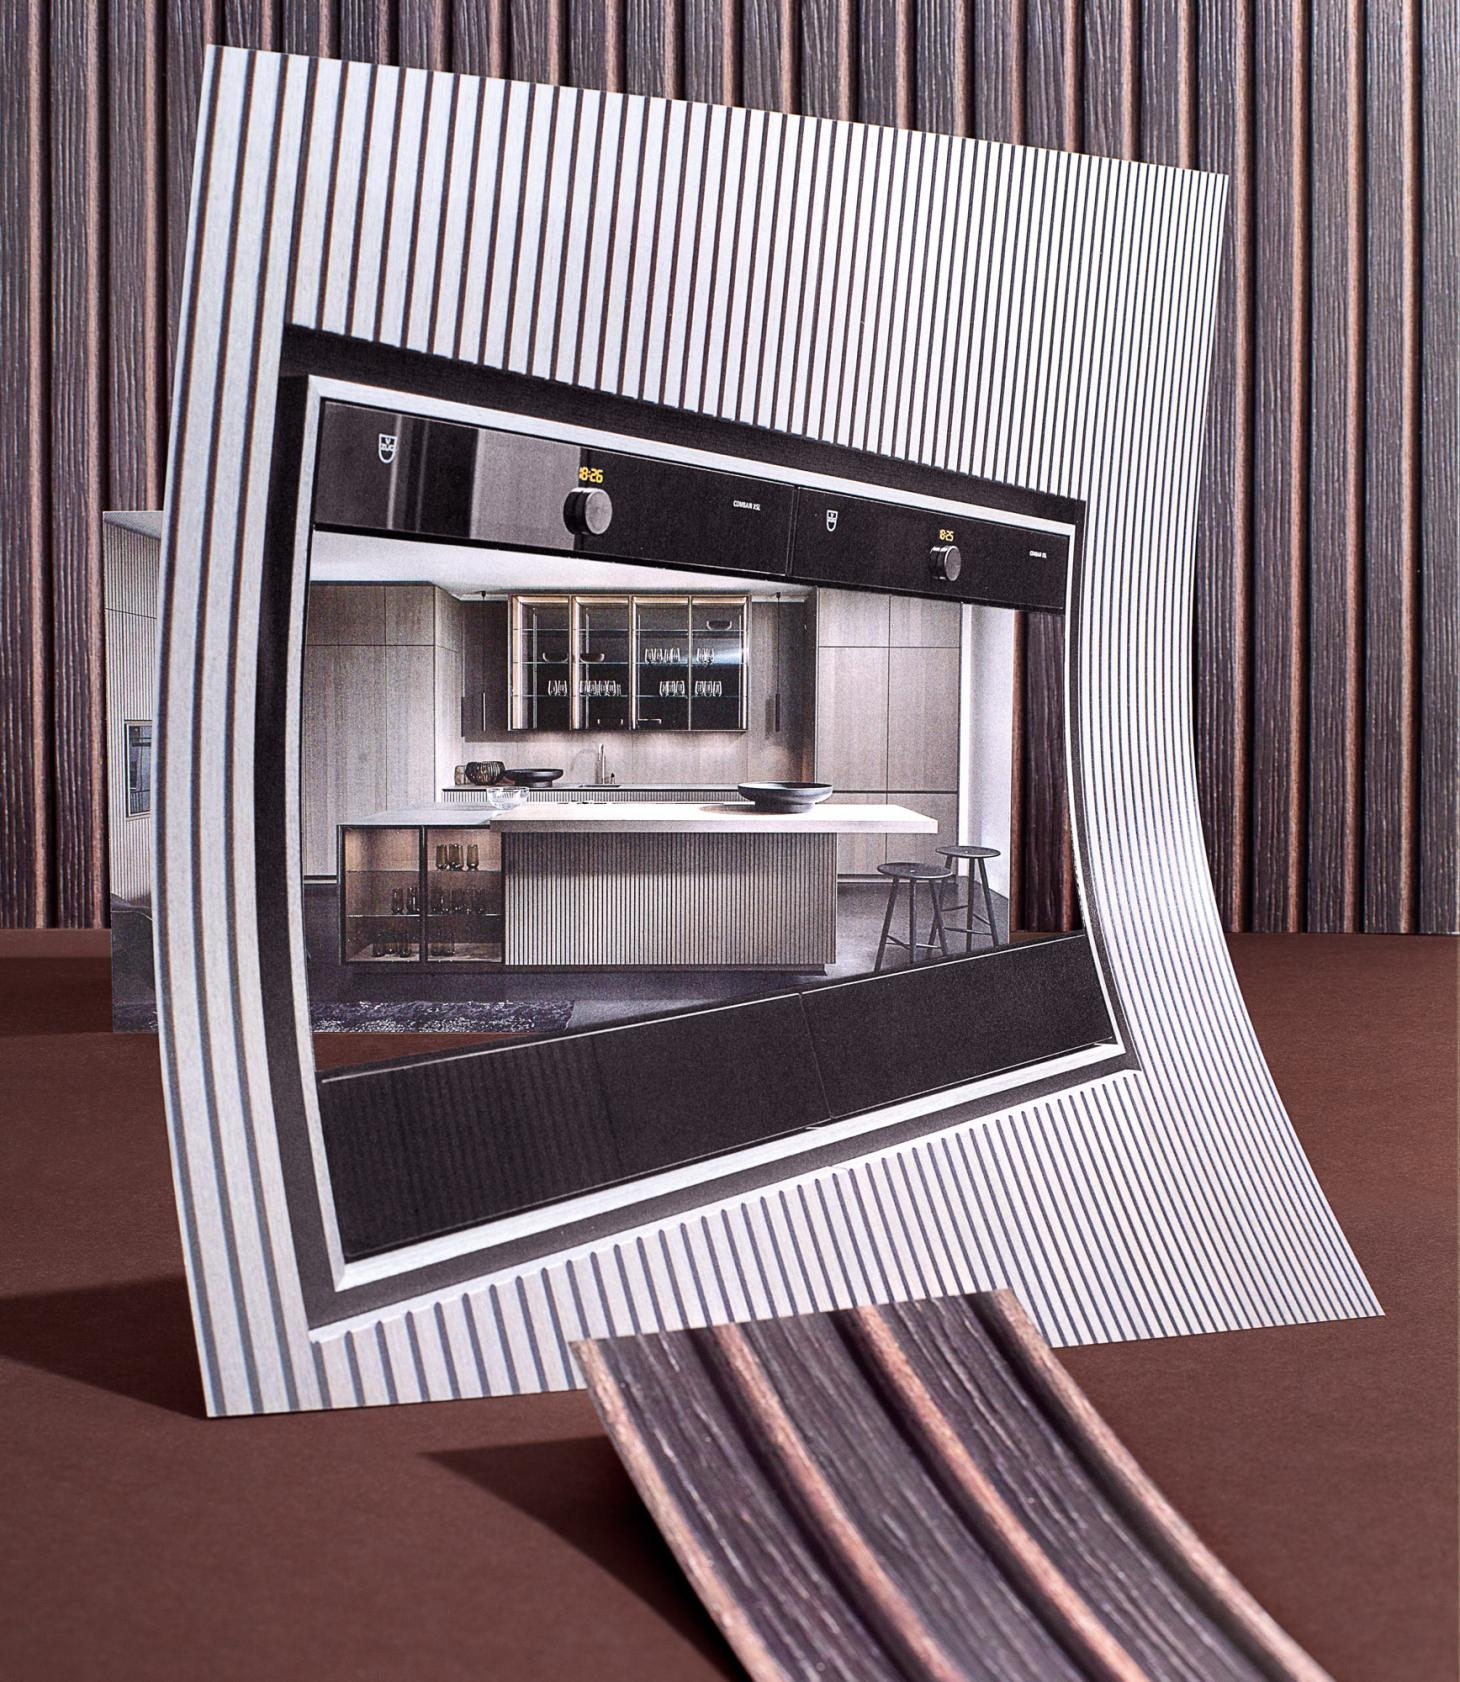 A collage of layered images showing the 'Lausanne' kitchen by Eggersmann, featuring wooden ridged cupboard fronts